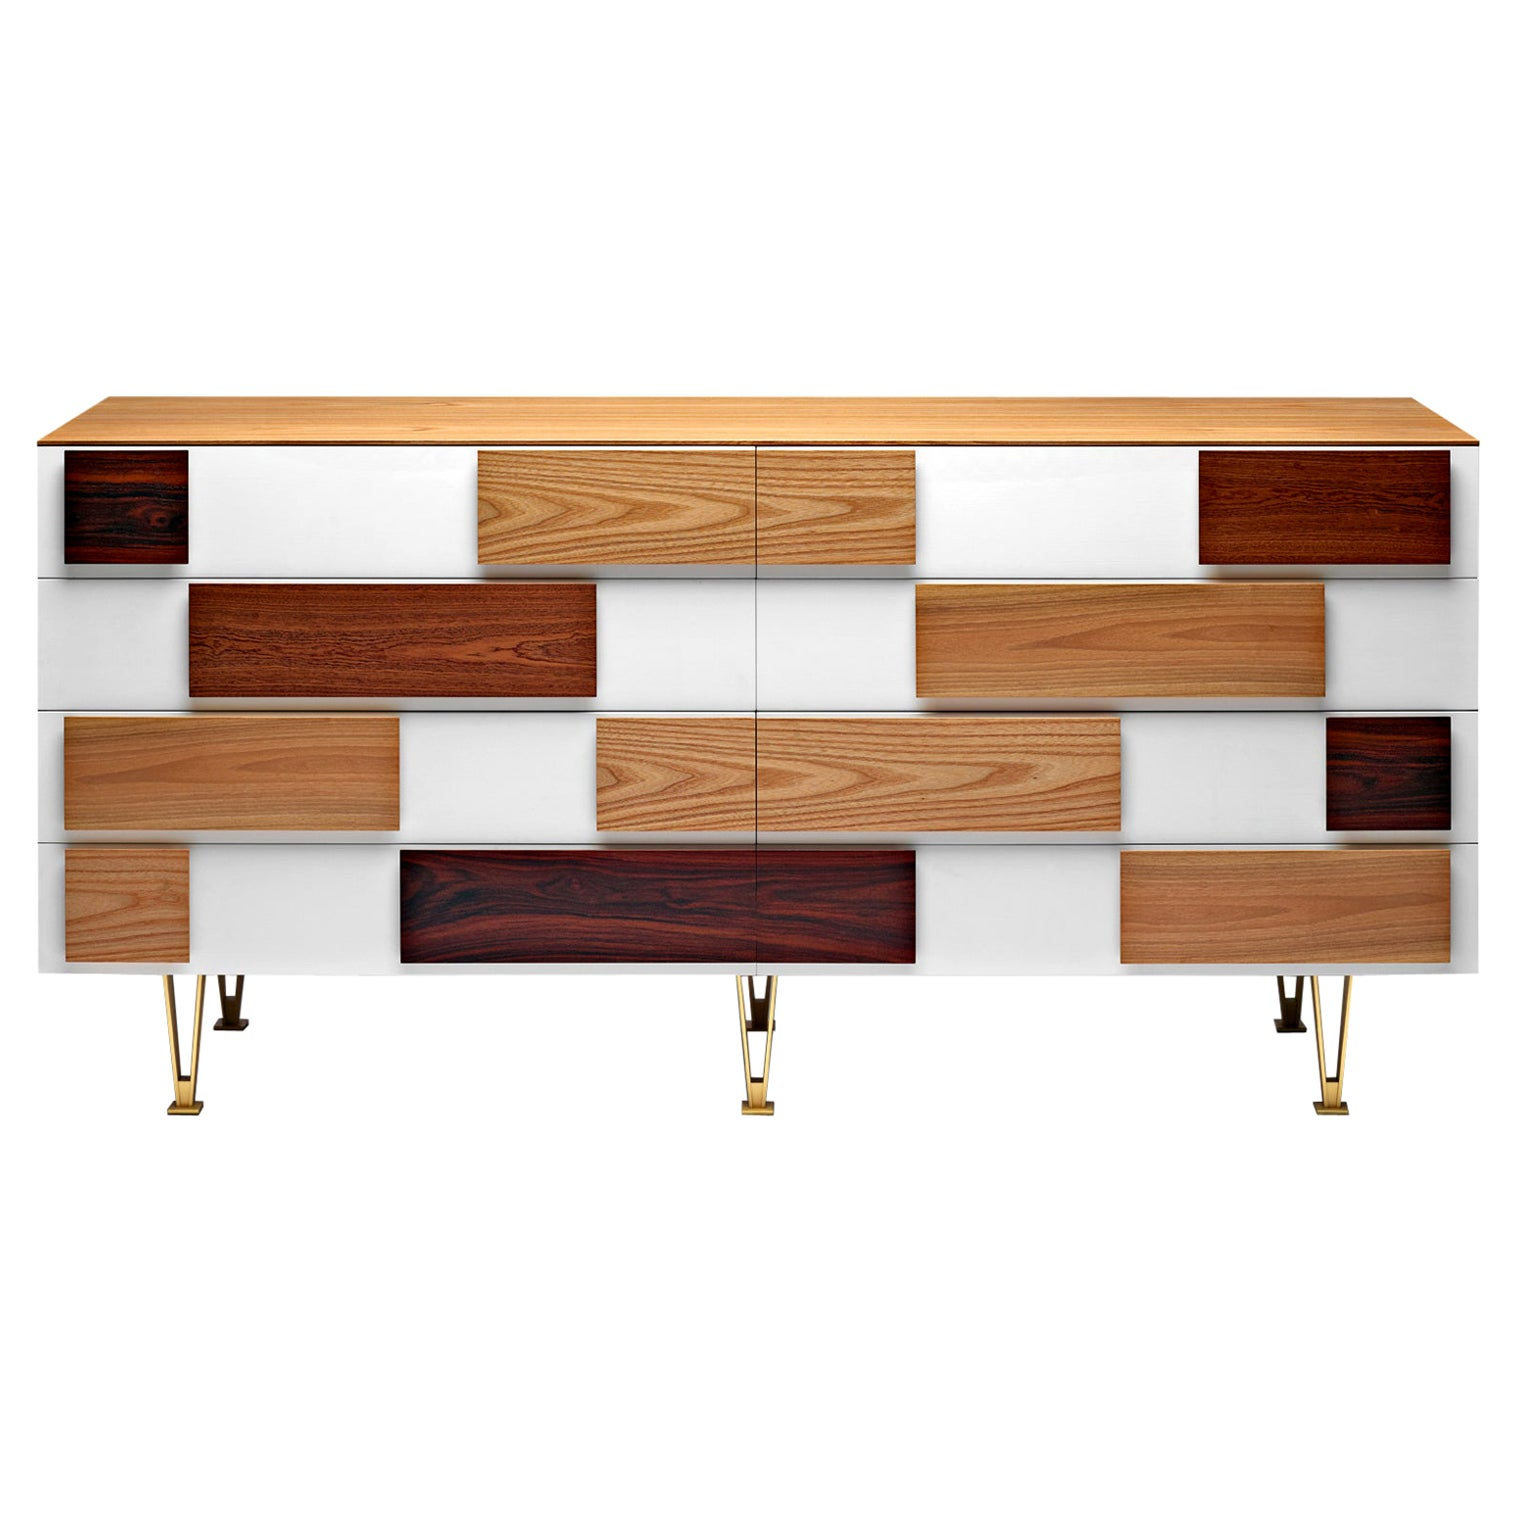 Molteni&C D.655.1 Large Chest of Drawers in Italian Walnut by Gio Ponti